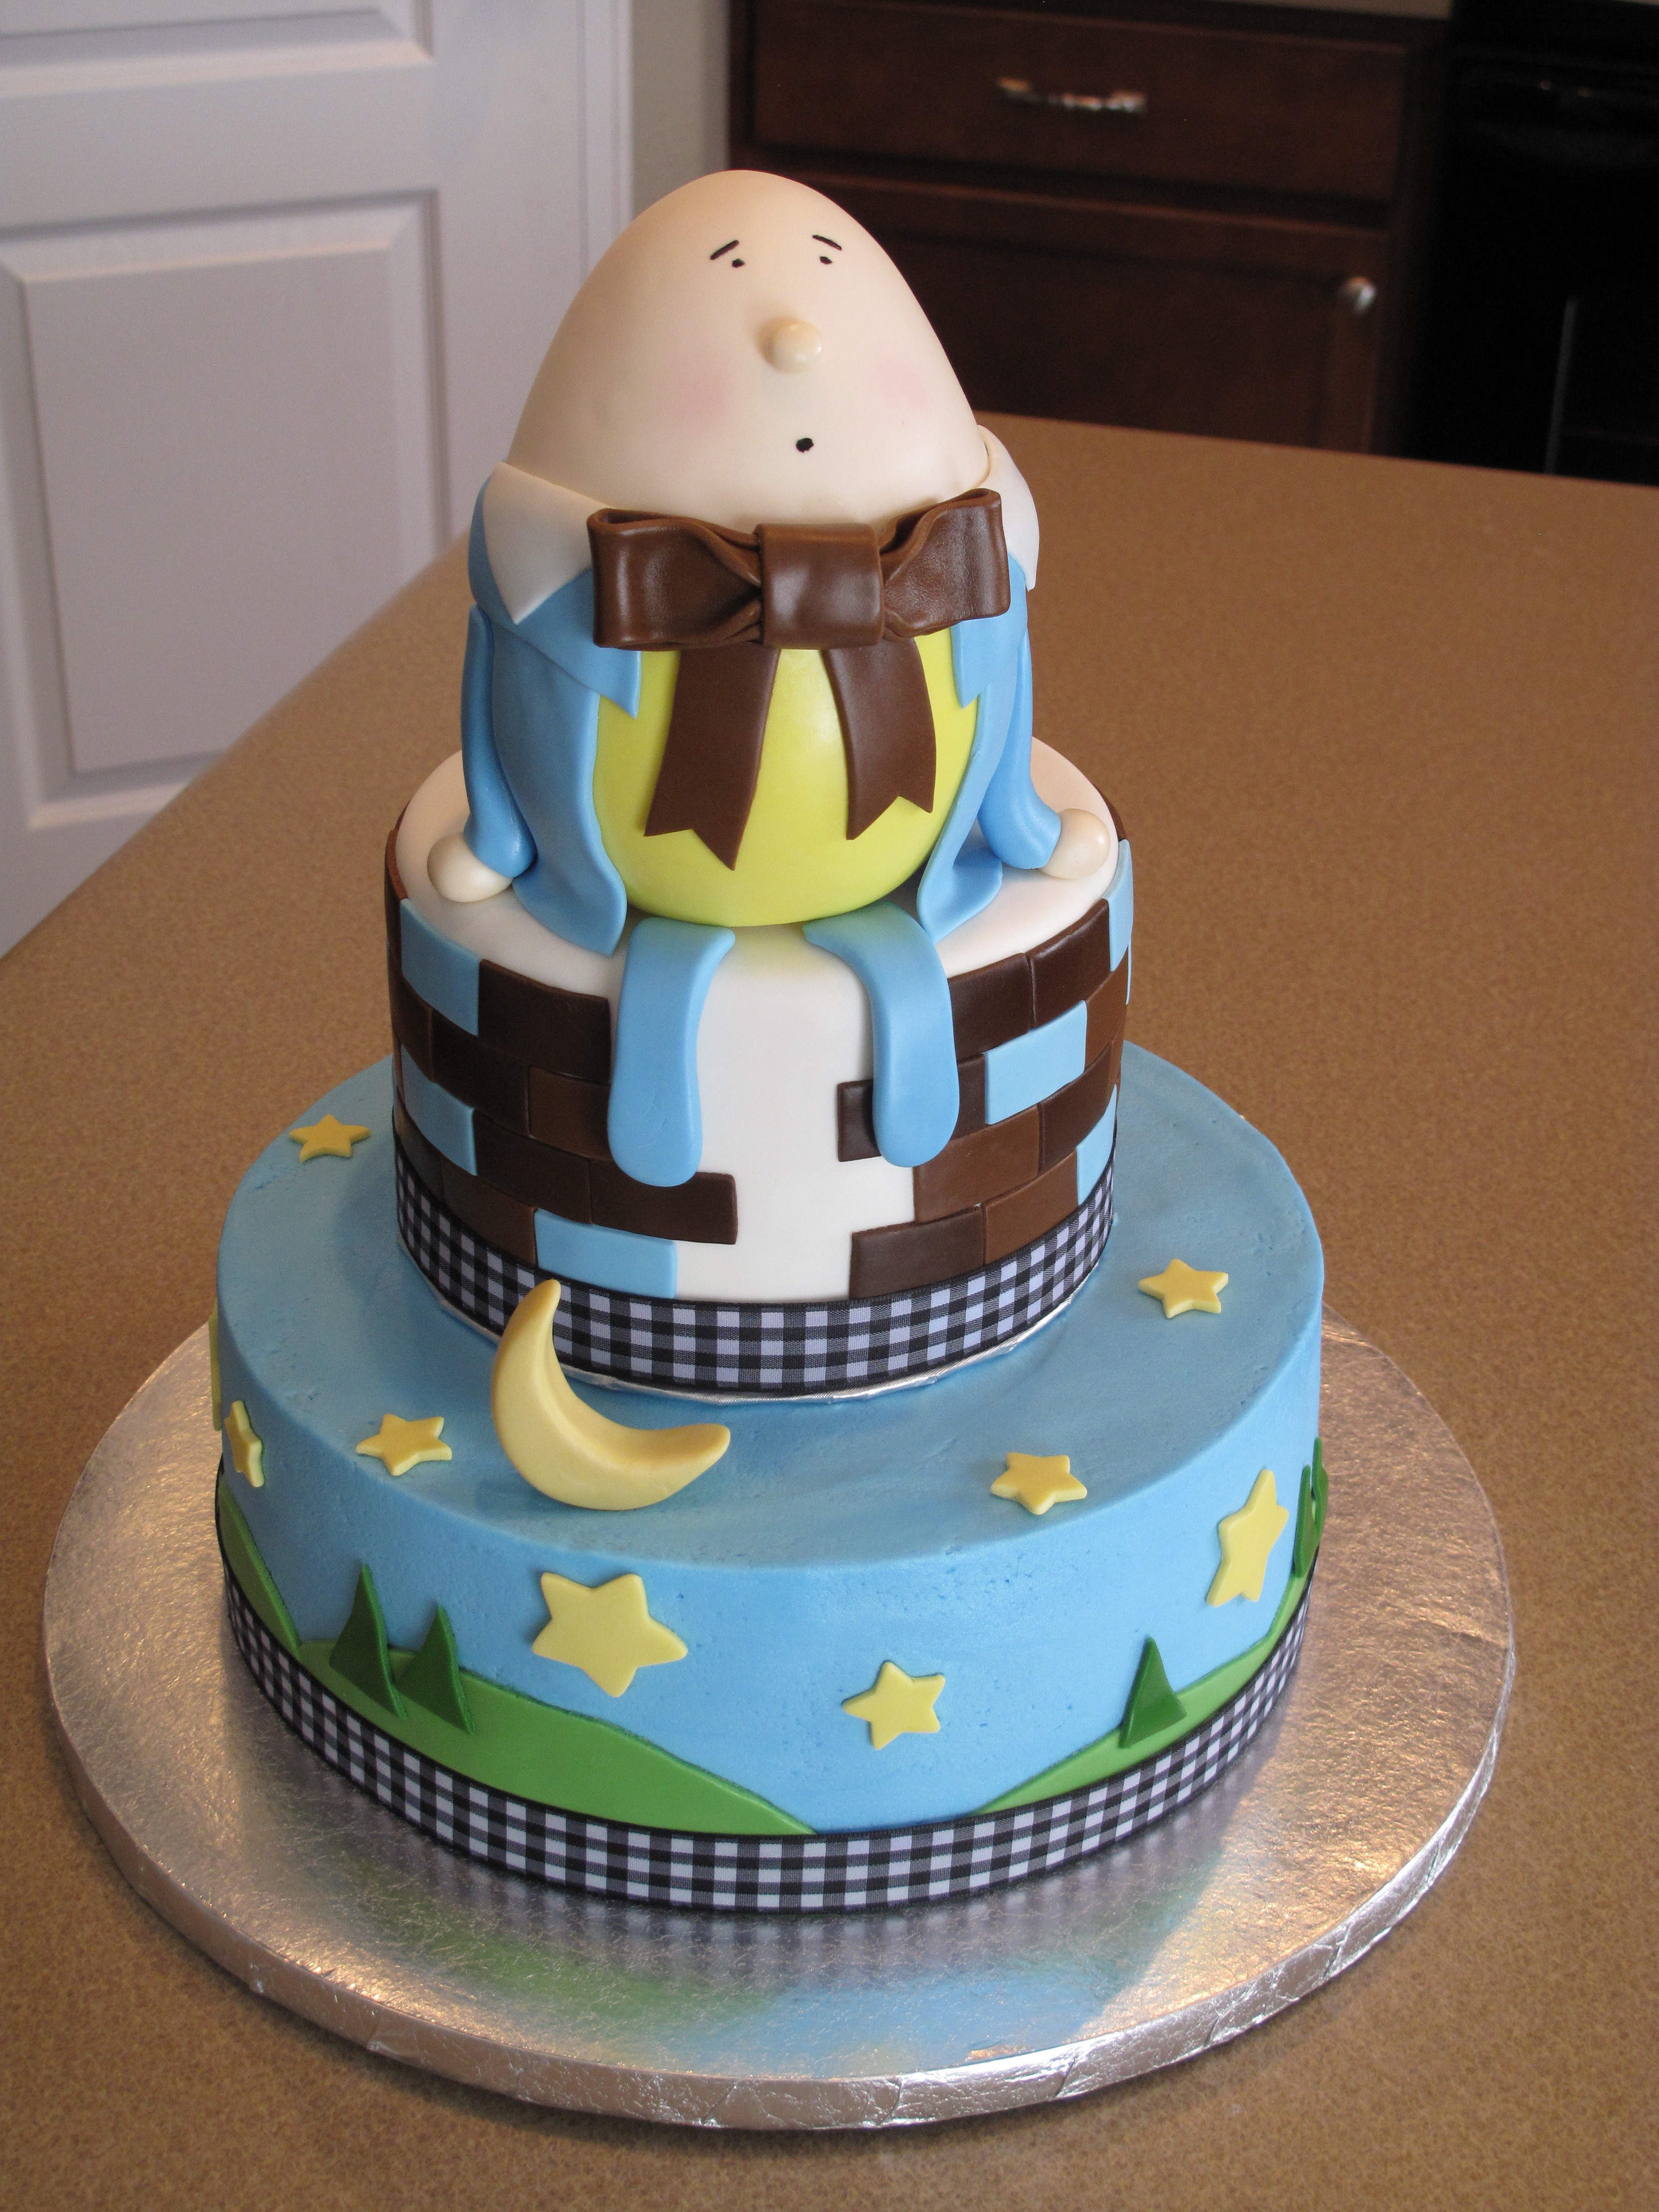 Best ideas about Birthday Party Cake . Save or Pin Cartoon Character Cakes Now.